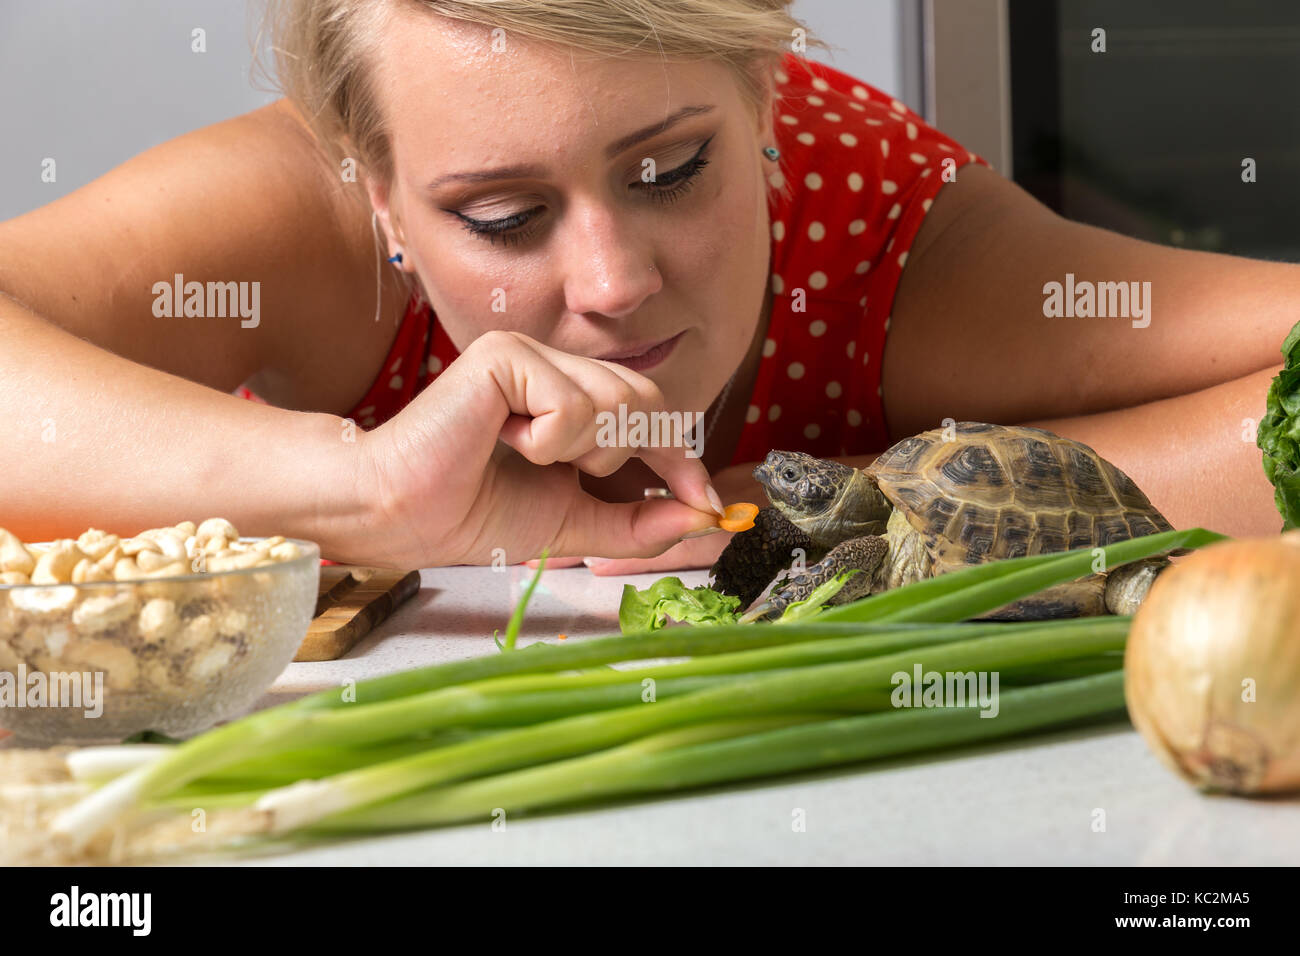 Female tries to feed tortoise with piece of carrot - Stock Image